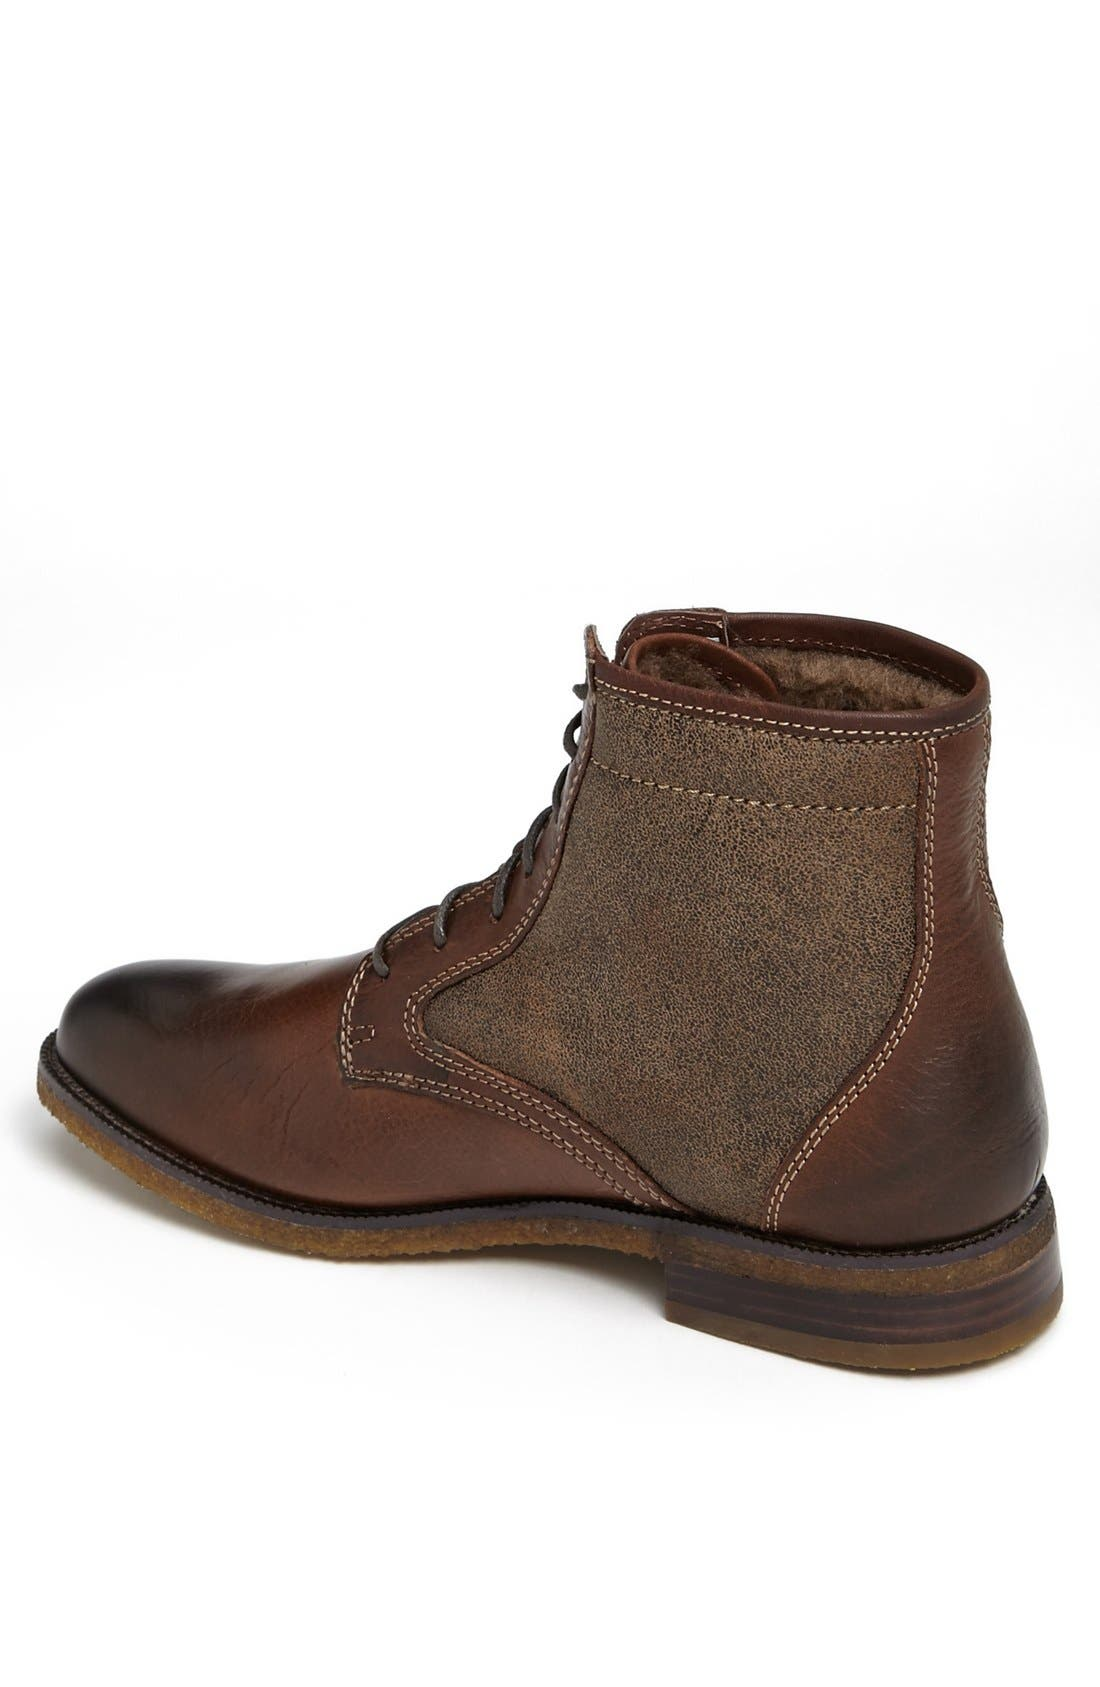 Alternate Image 2  - J&M 1850 'Burchfield' Boot (Online Only)